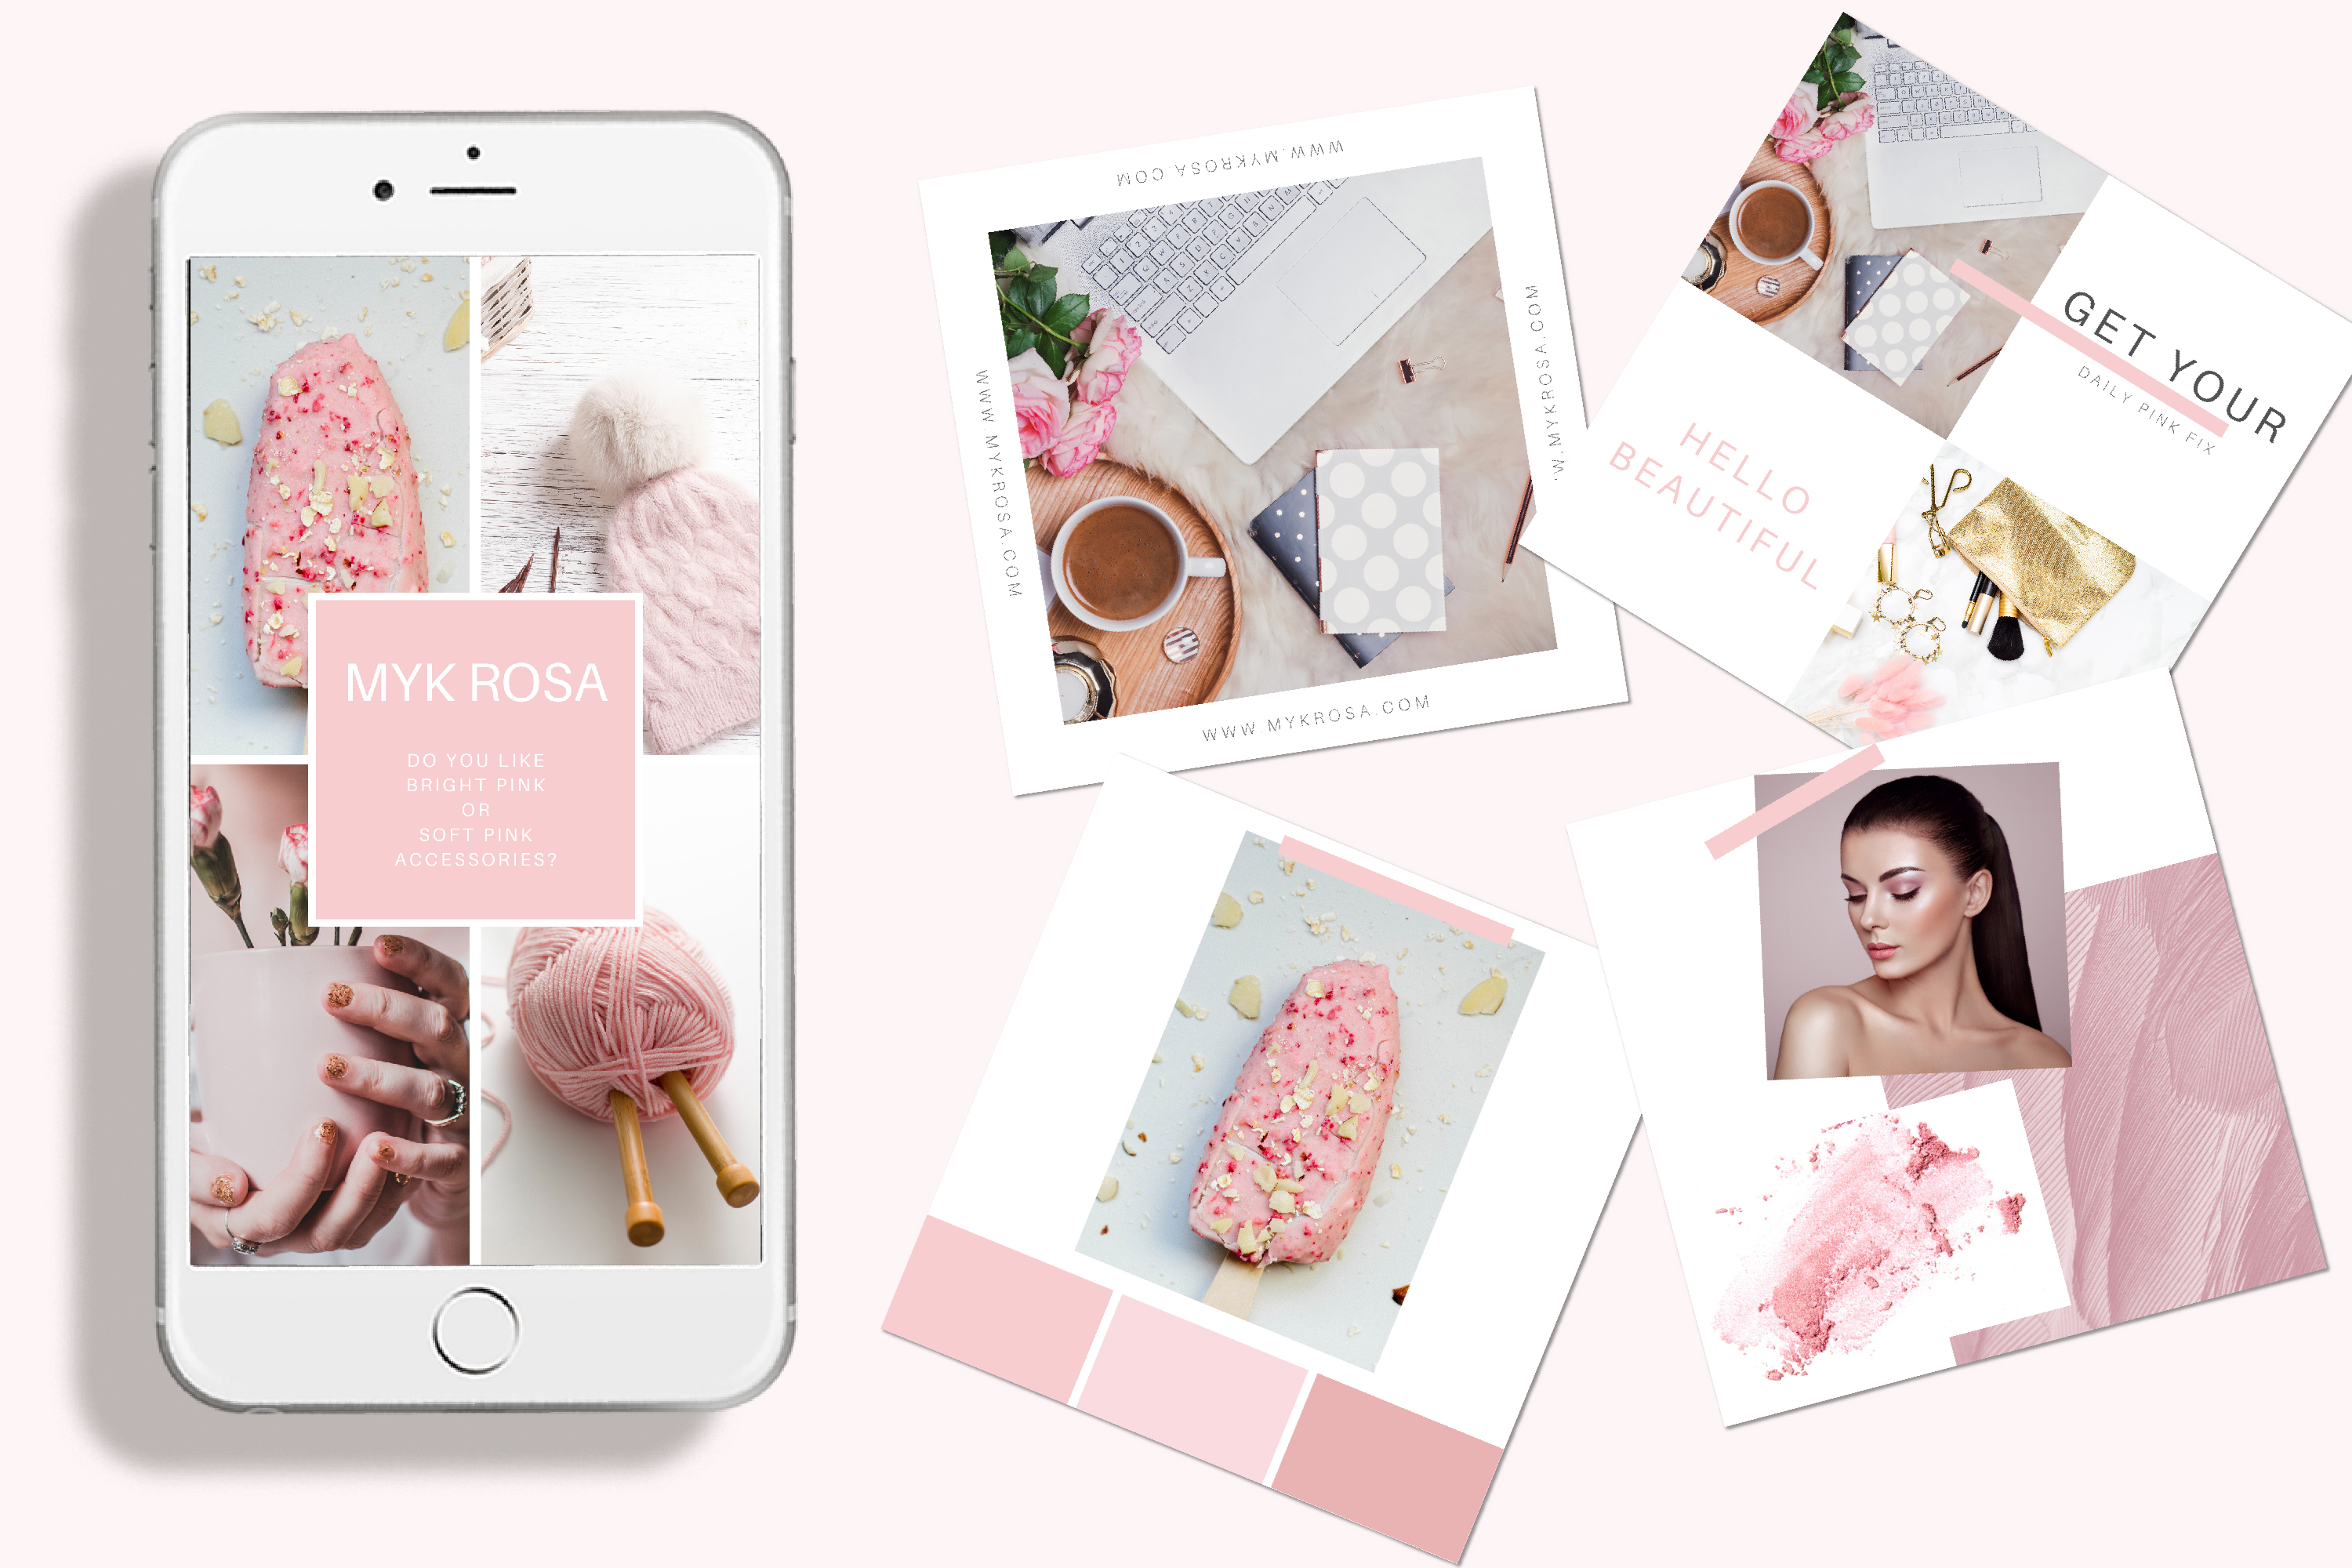 60 Instagram Post & Story Templates For Canva - Myk Rosa example image 2